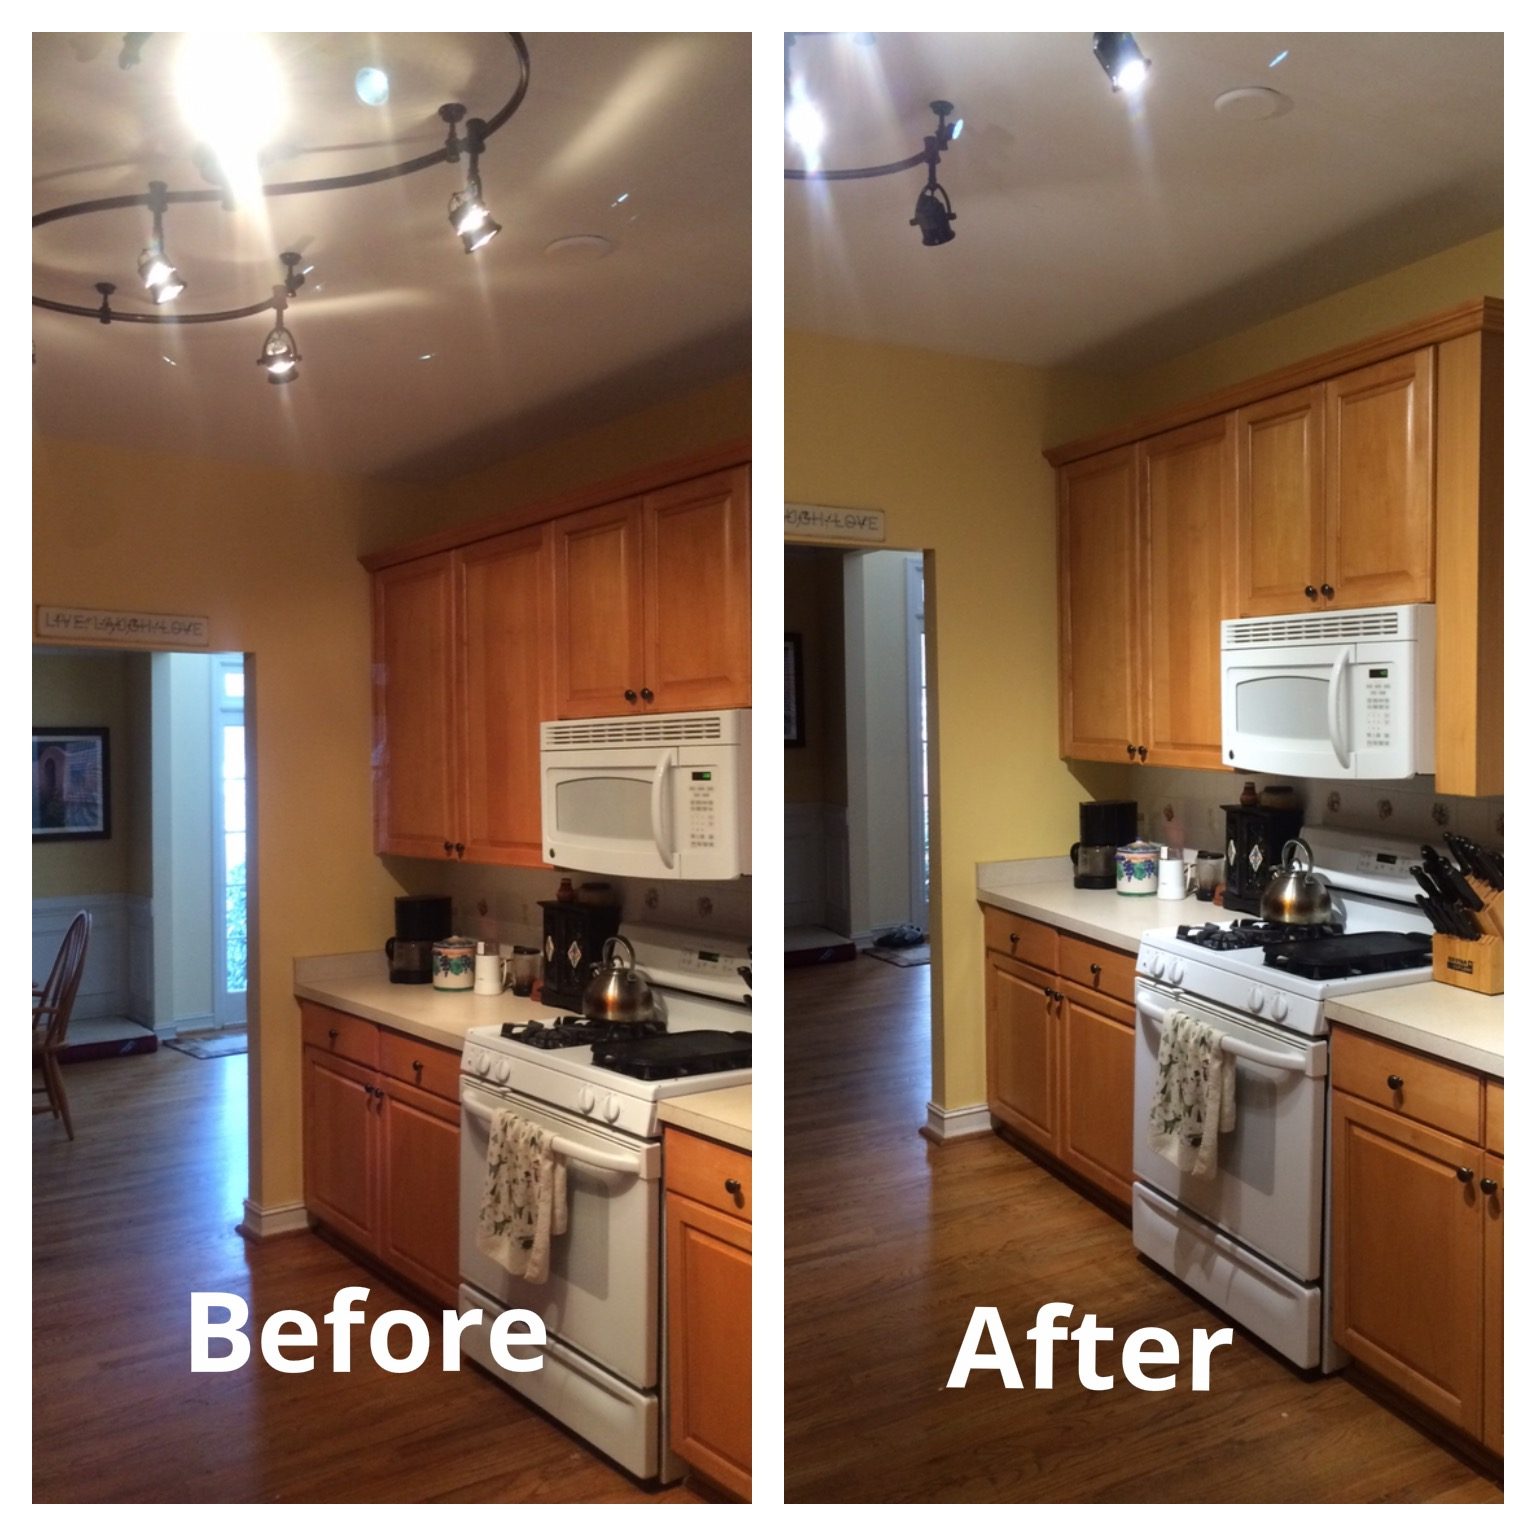 led lights replace halogens in kitchen update kitchen led lighting For the 10 years that we have lived in our house we had functional but not very stylish troffer lights in our kitchen They are great for work spaces and